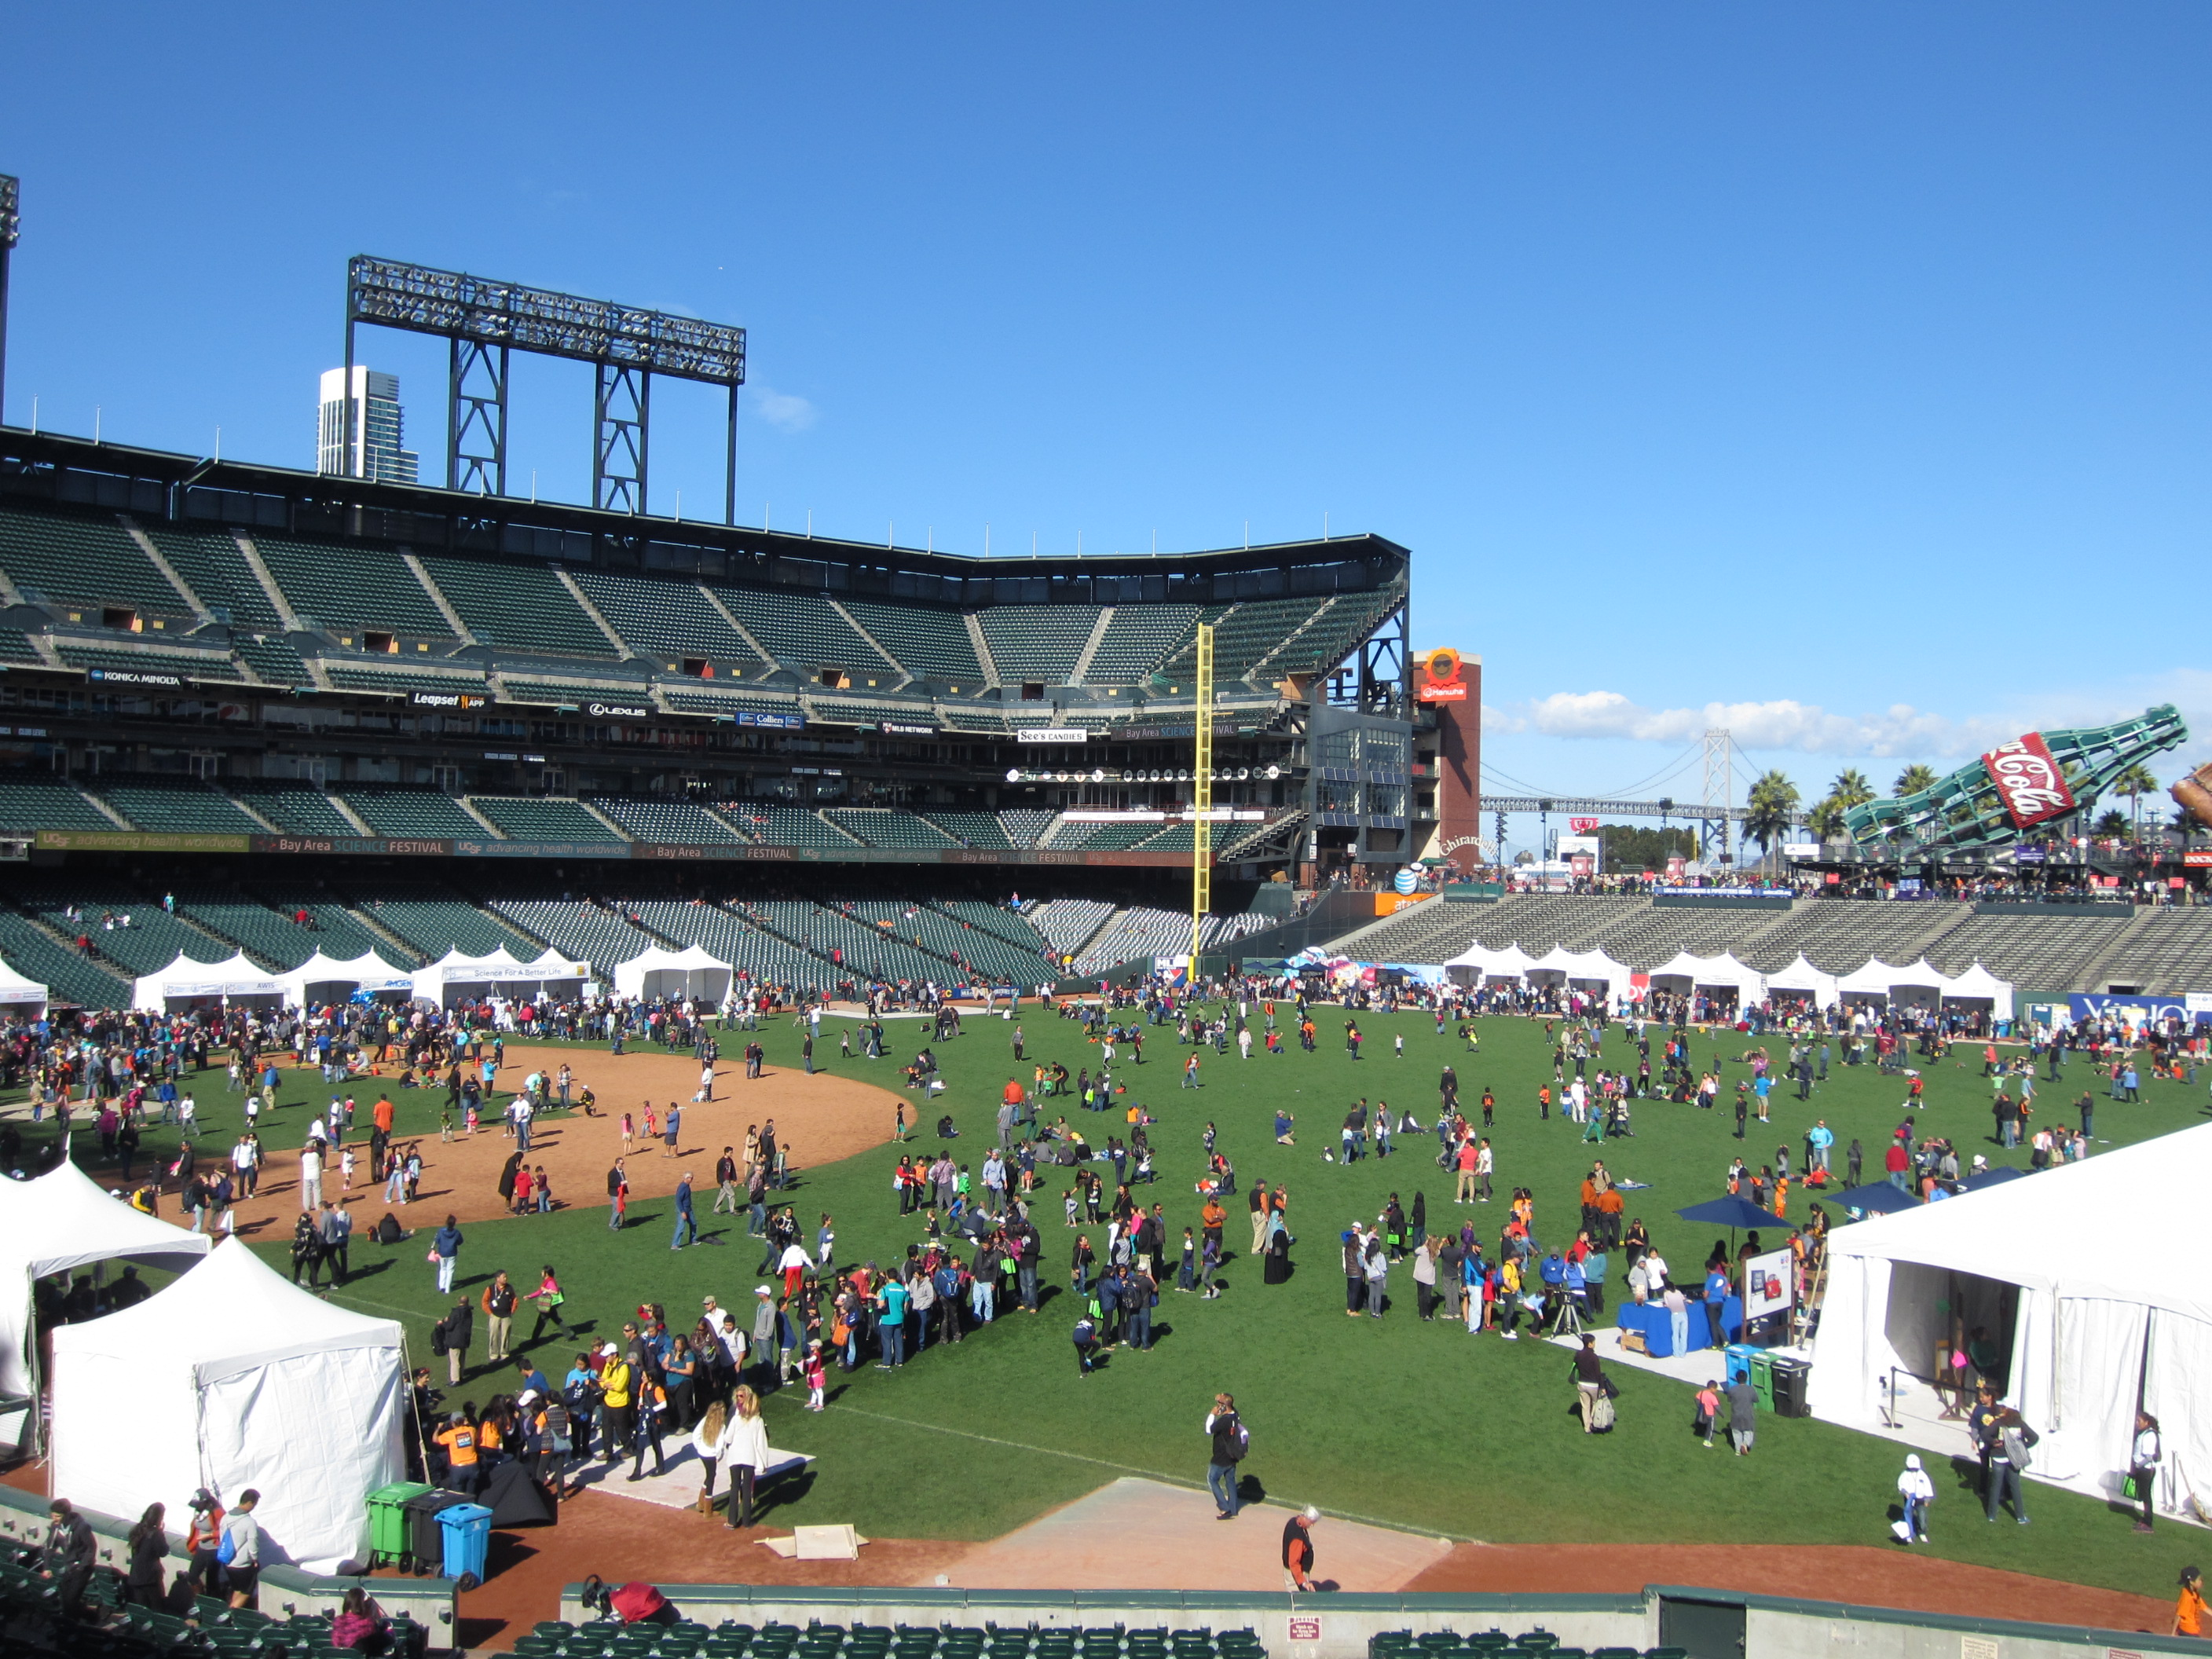 On Nov. 1, 2014, AT&T park was filled with more than 150 interactive science and technology exhibits for Discovery Day, the last event of the 4th annual Bay Area Science Festival. The exhibits are run by Bay Area organizations. Last year, 30,000 people attended, and the stadium was again buzzing with crowds on Saturday. (Shara Tonn/Peninsula Press)